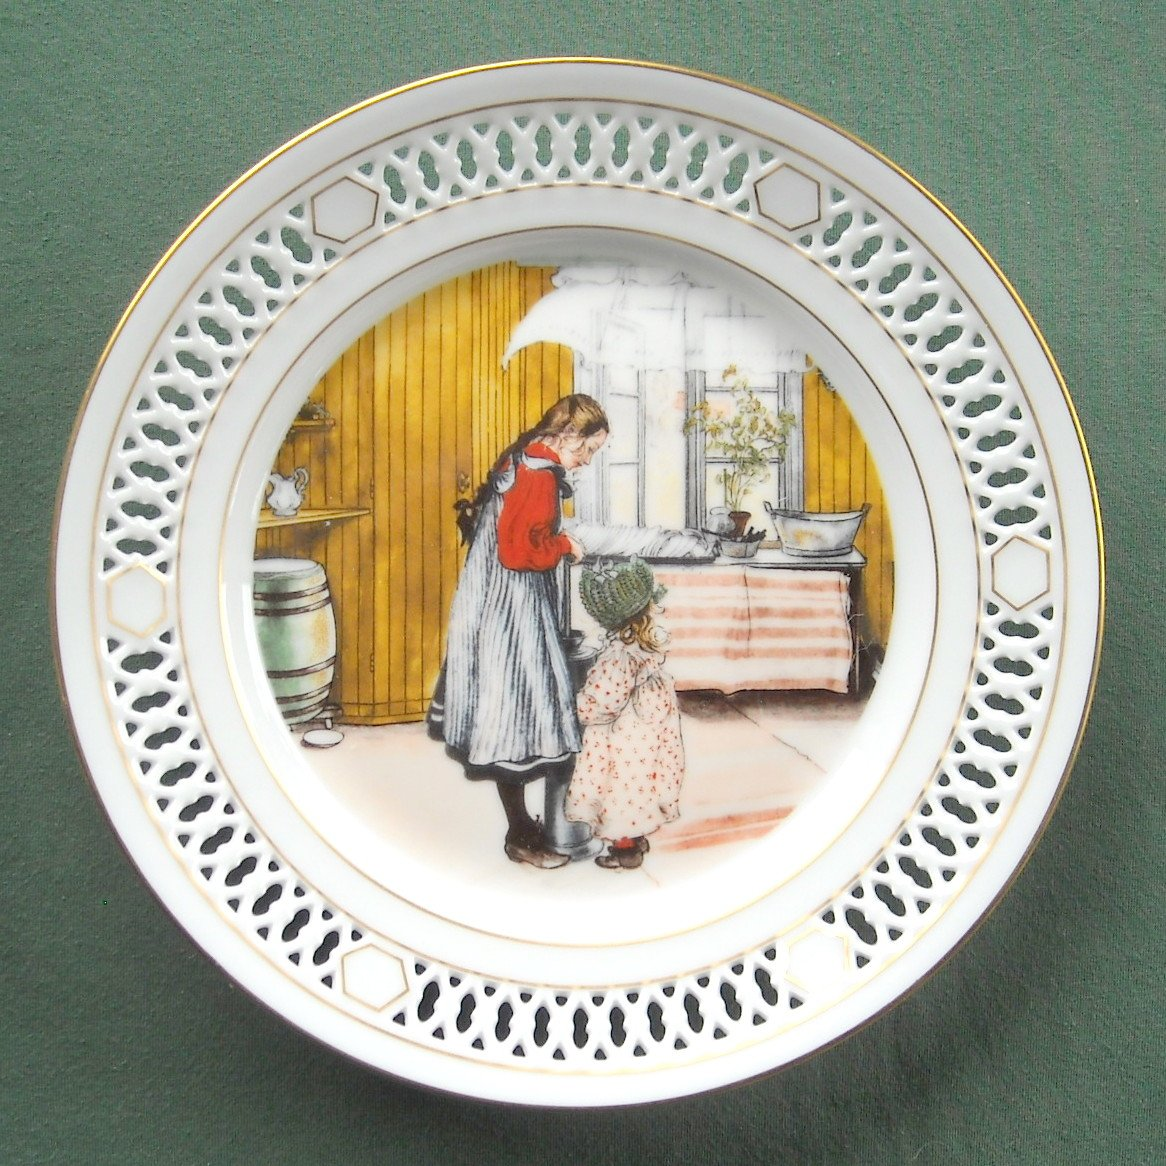 Bing Grondahl Denmark Carl Larsson First North American Edition plate 4 1978